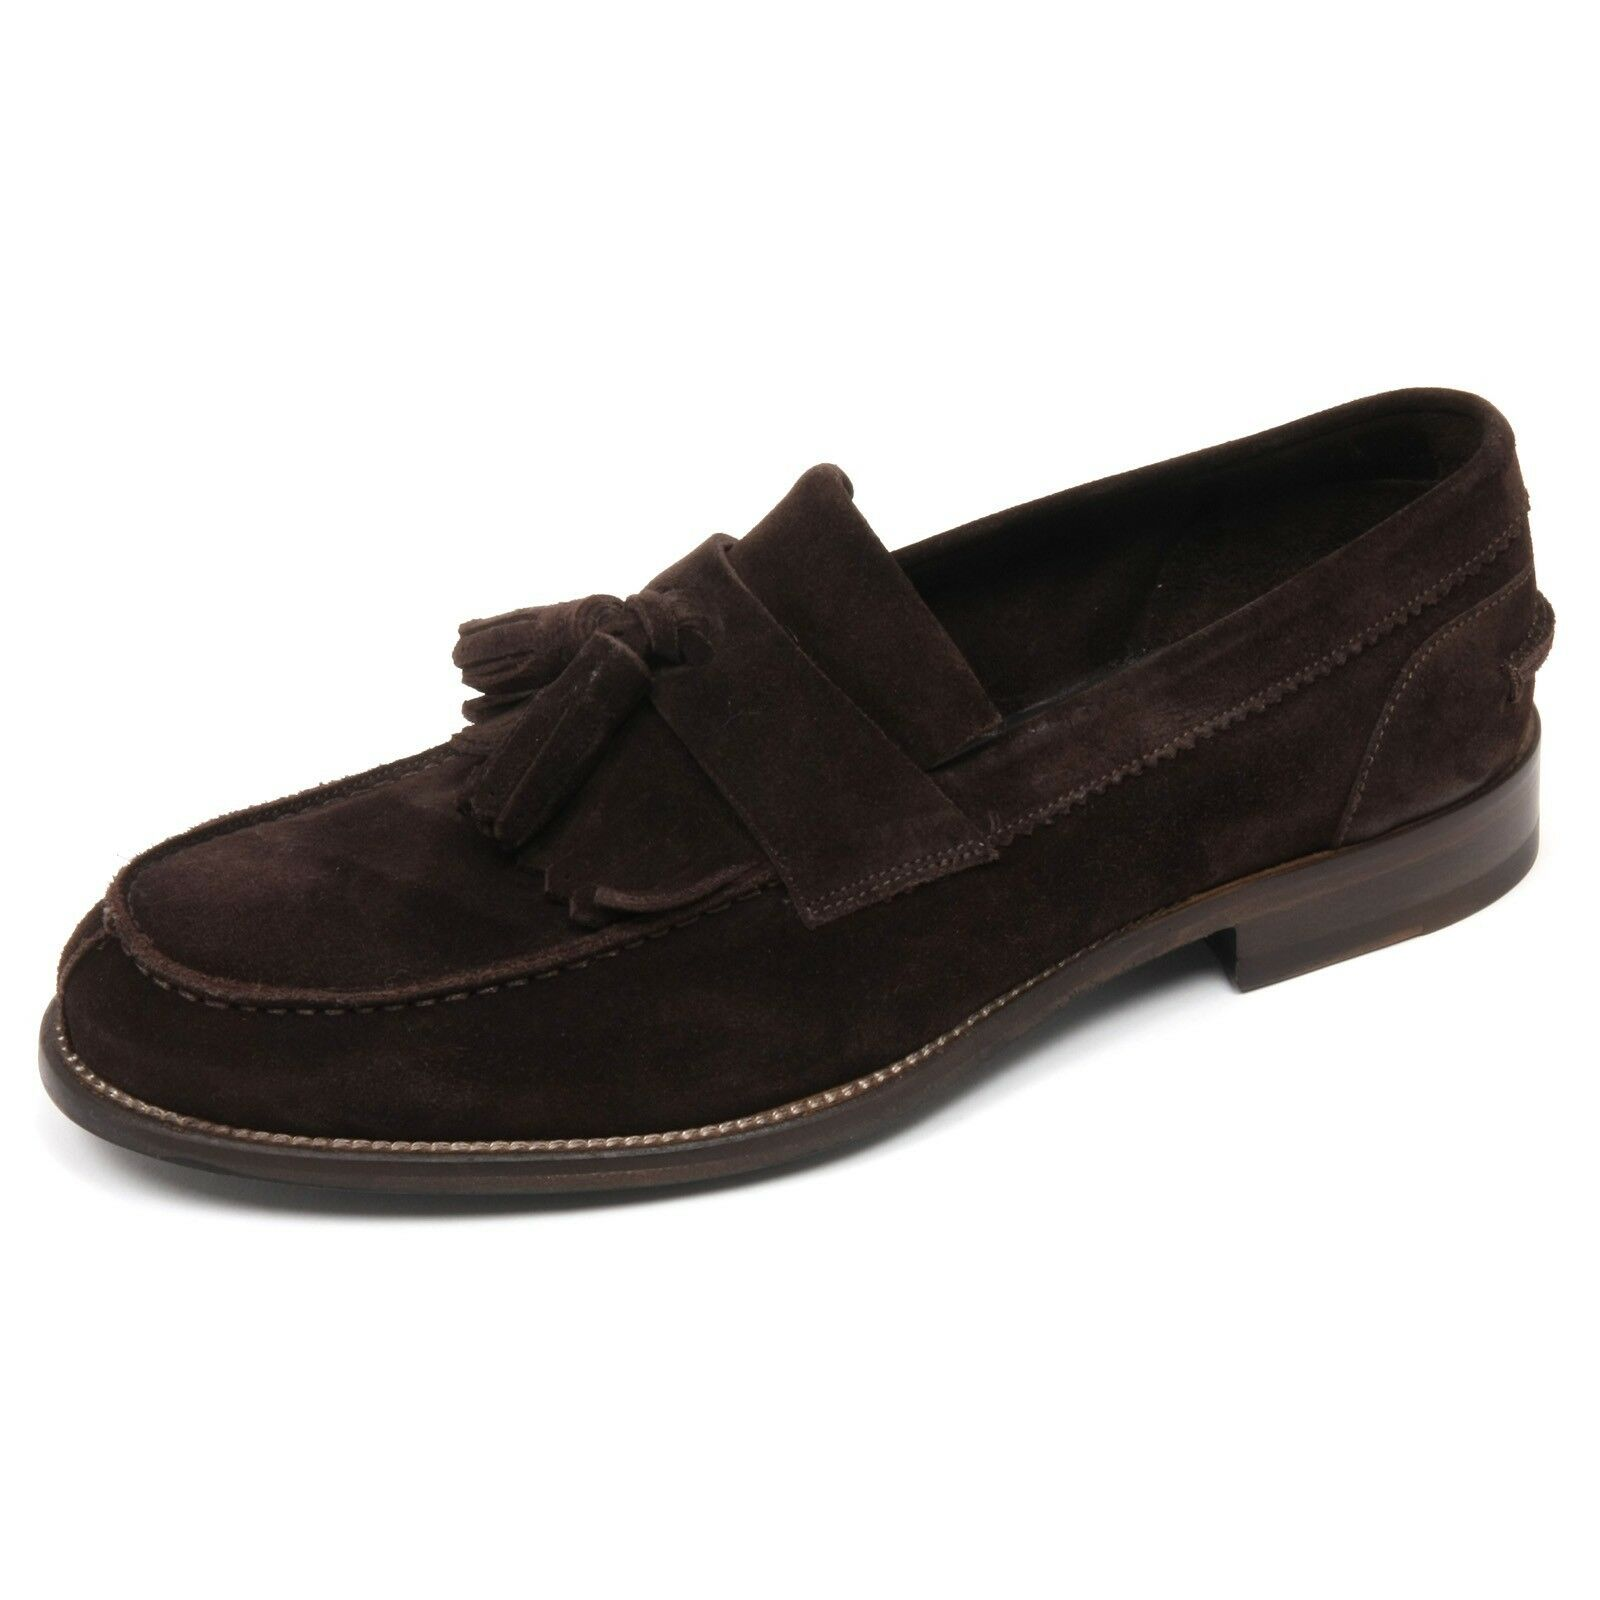 C7818 marrone mocassino uomo CARACCIOLO 1971 scarpa marrone C7818 scuro loafer shoe man 1cd907